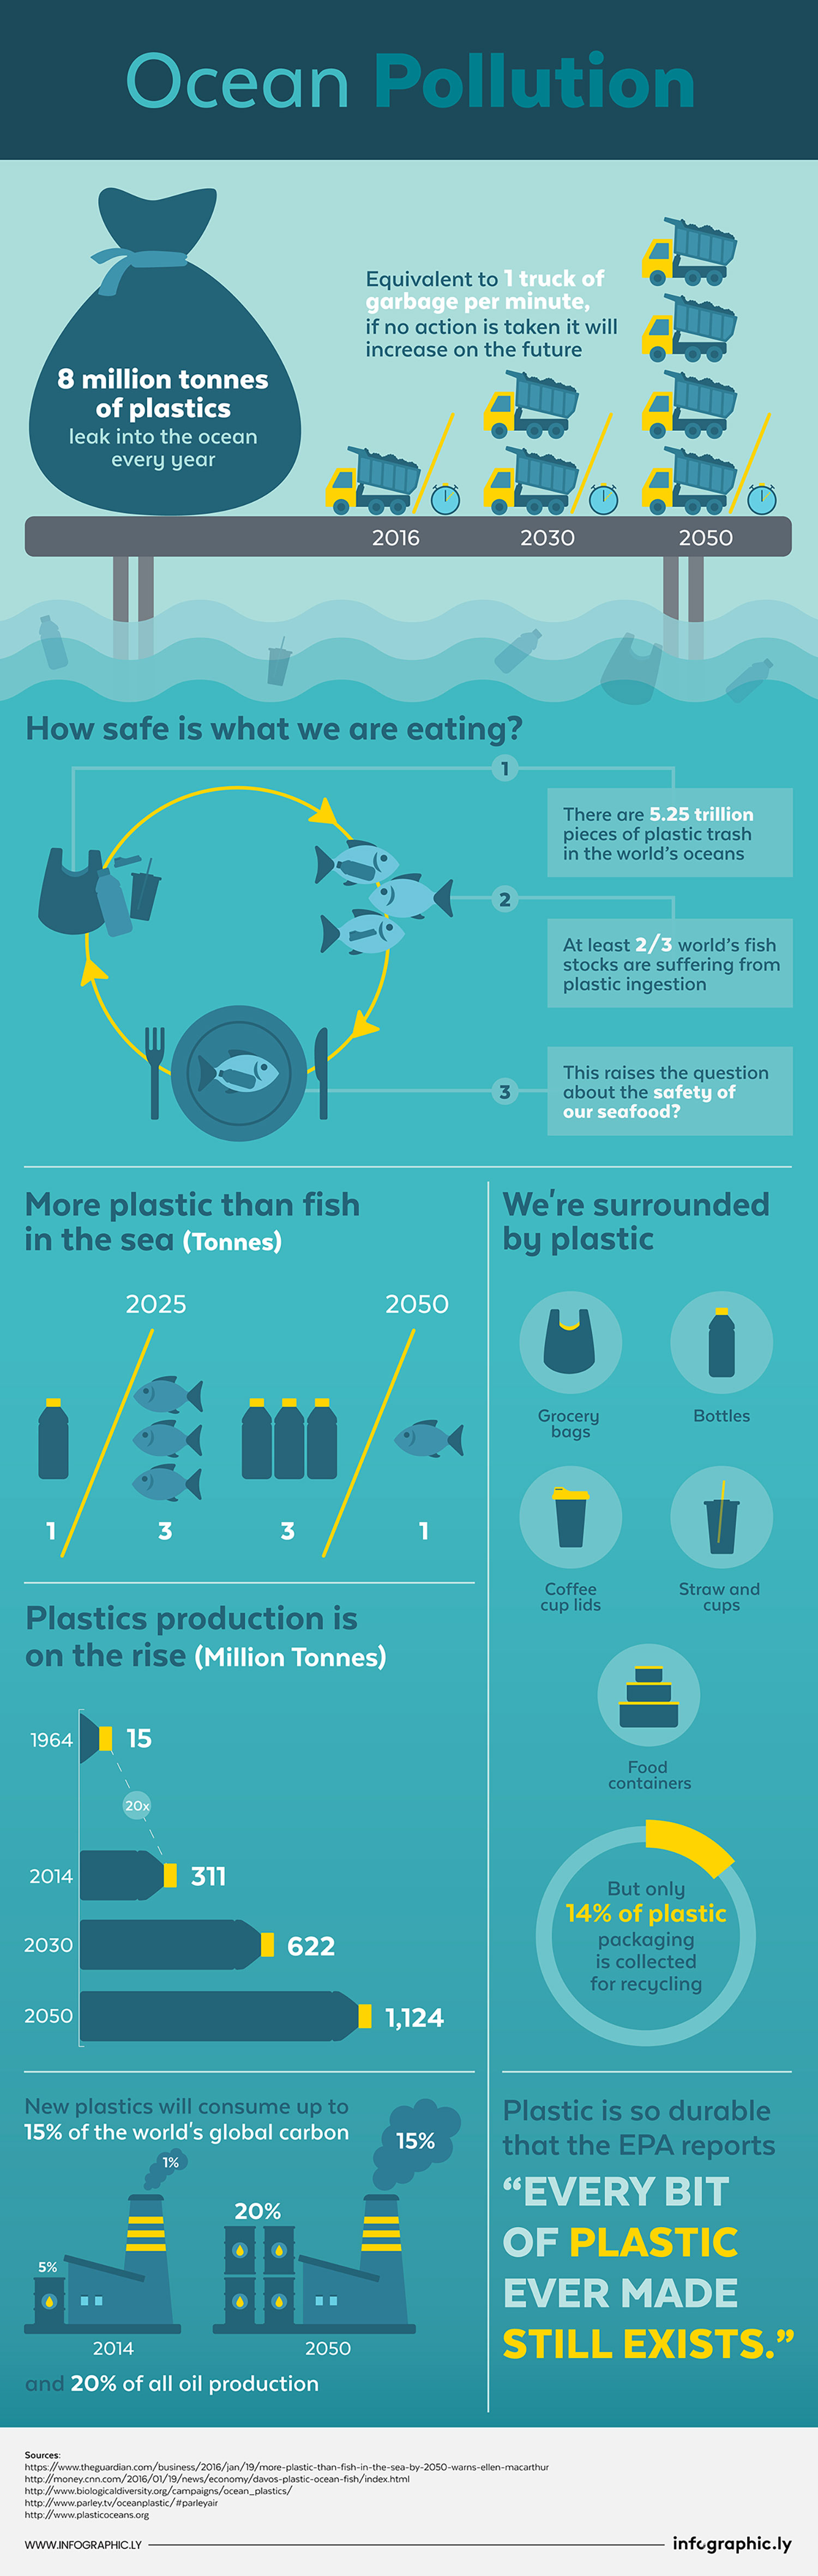 Infographic Ocean Pollution